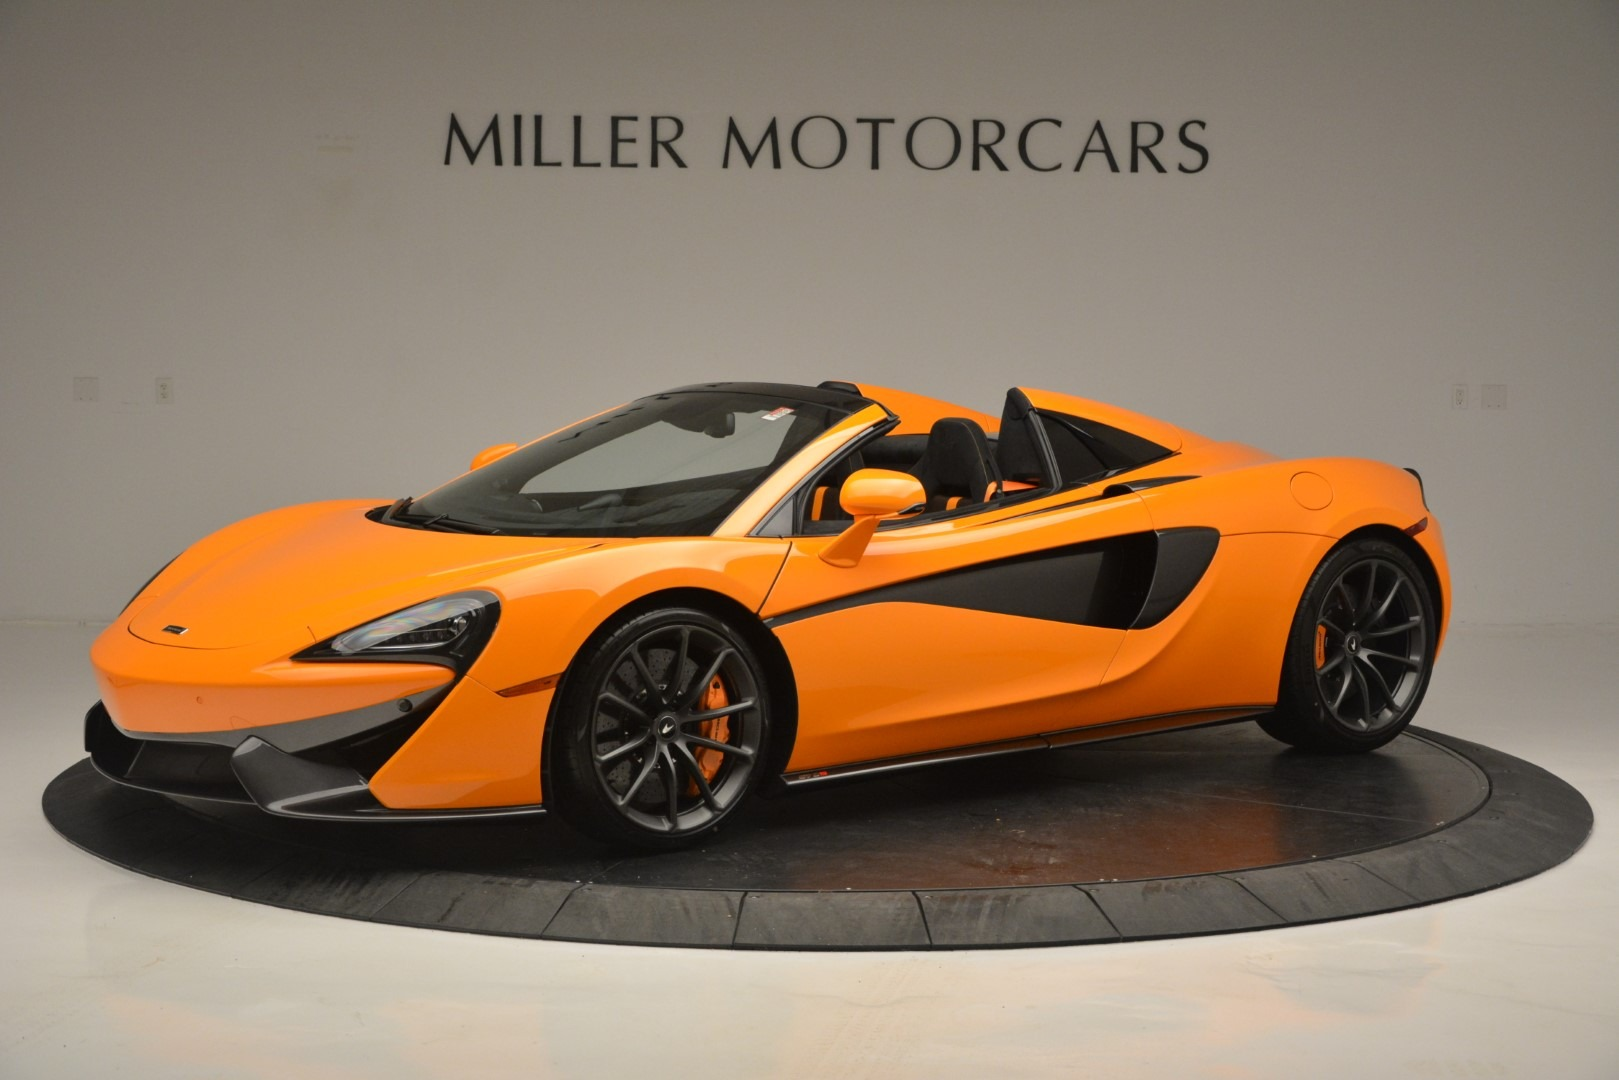 Used 2019 McLaren 570S SPIDER Convertible for sale $240,720 at Pagani of Greenwich in Greenwich CT 06830 1